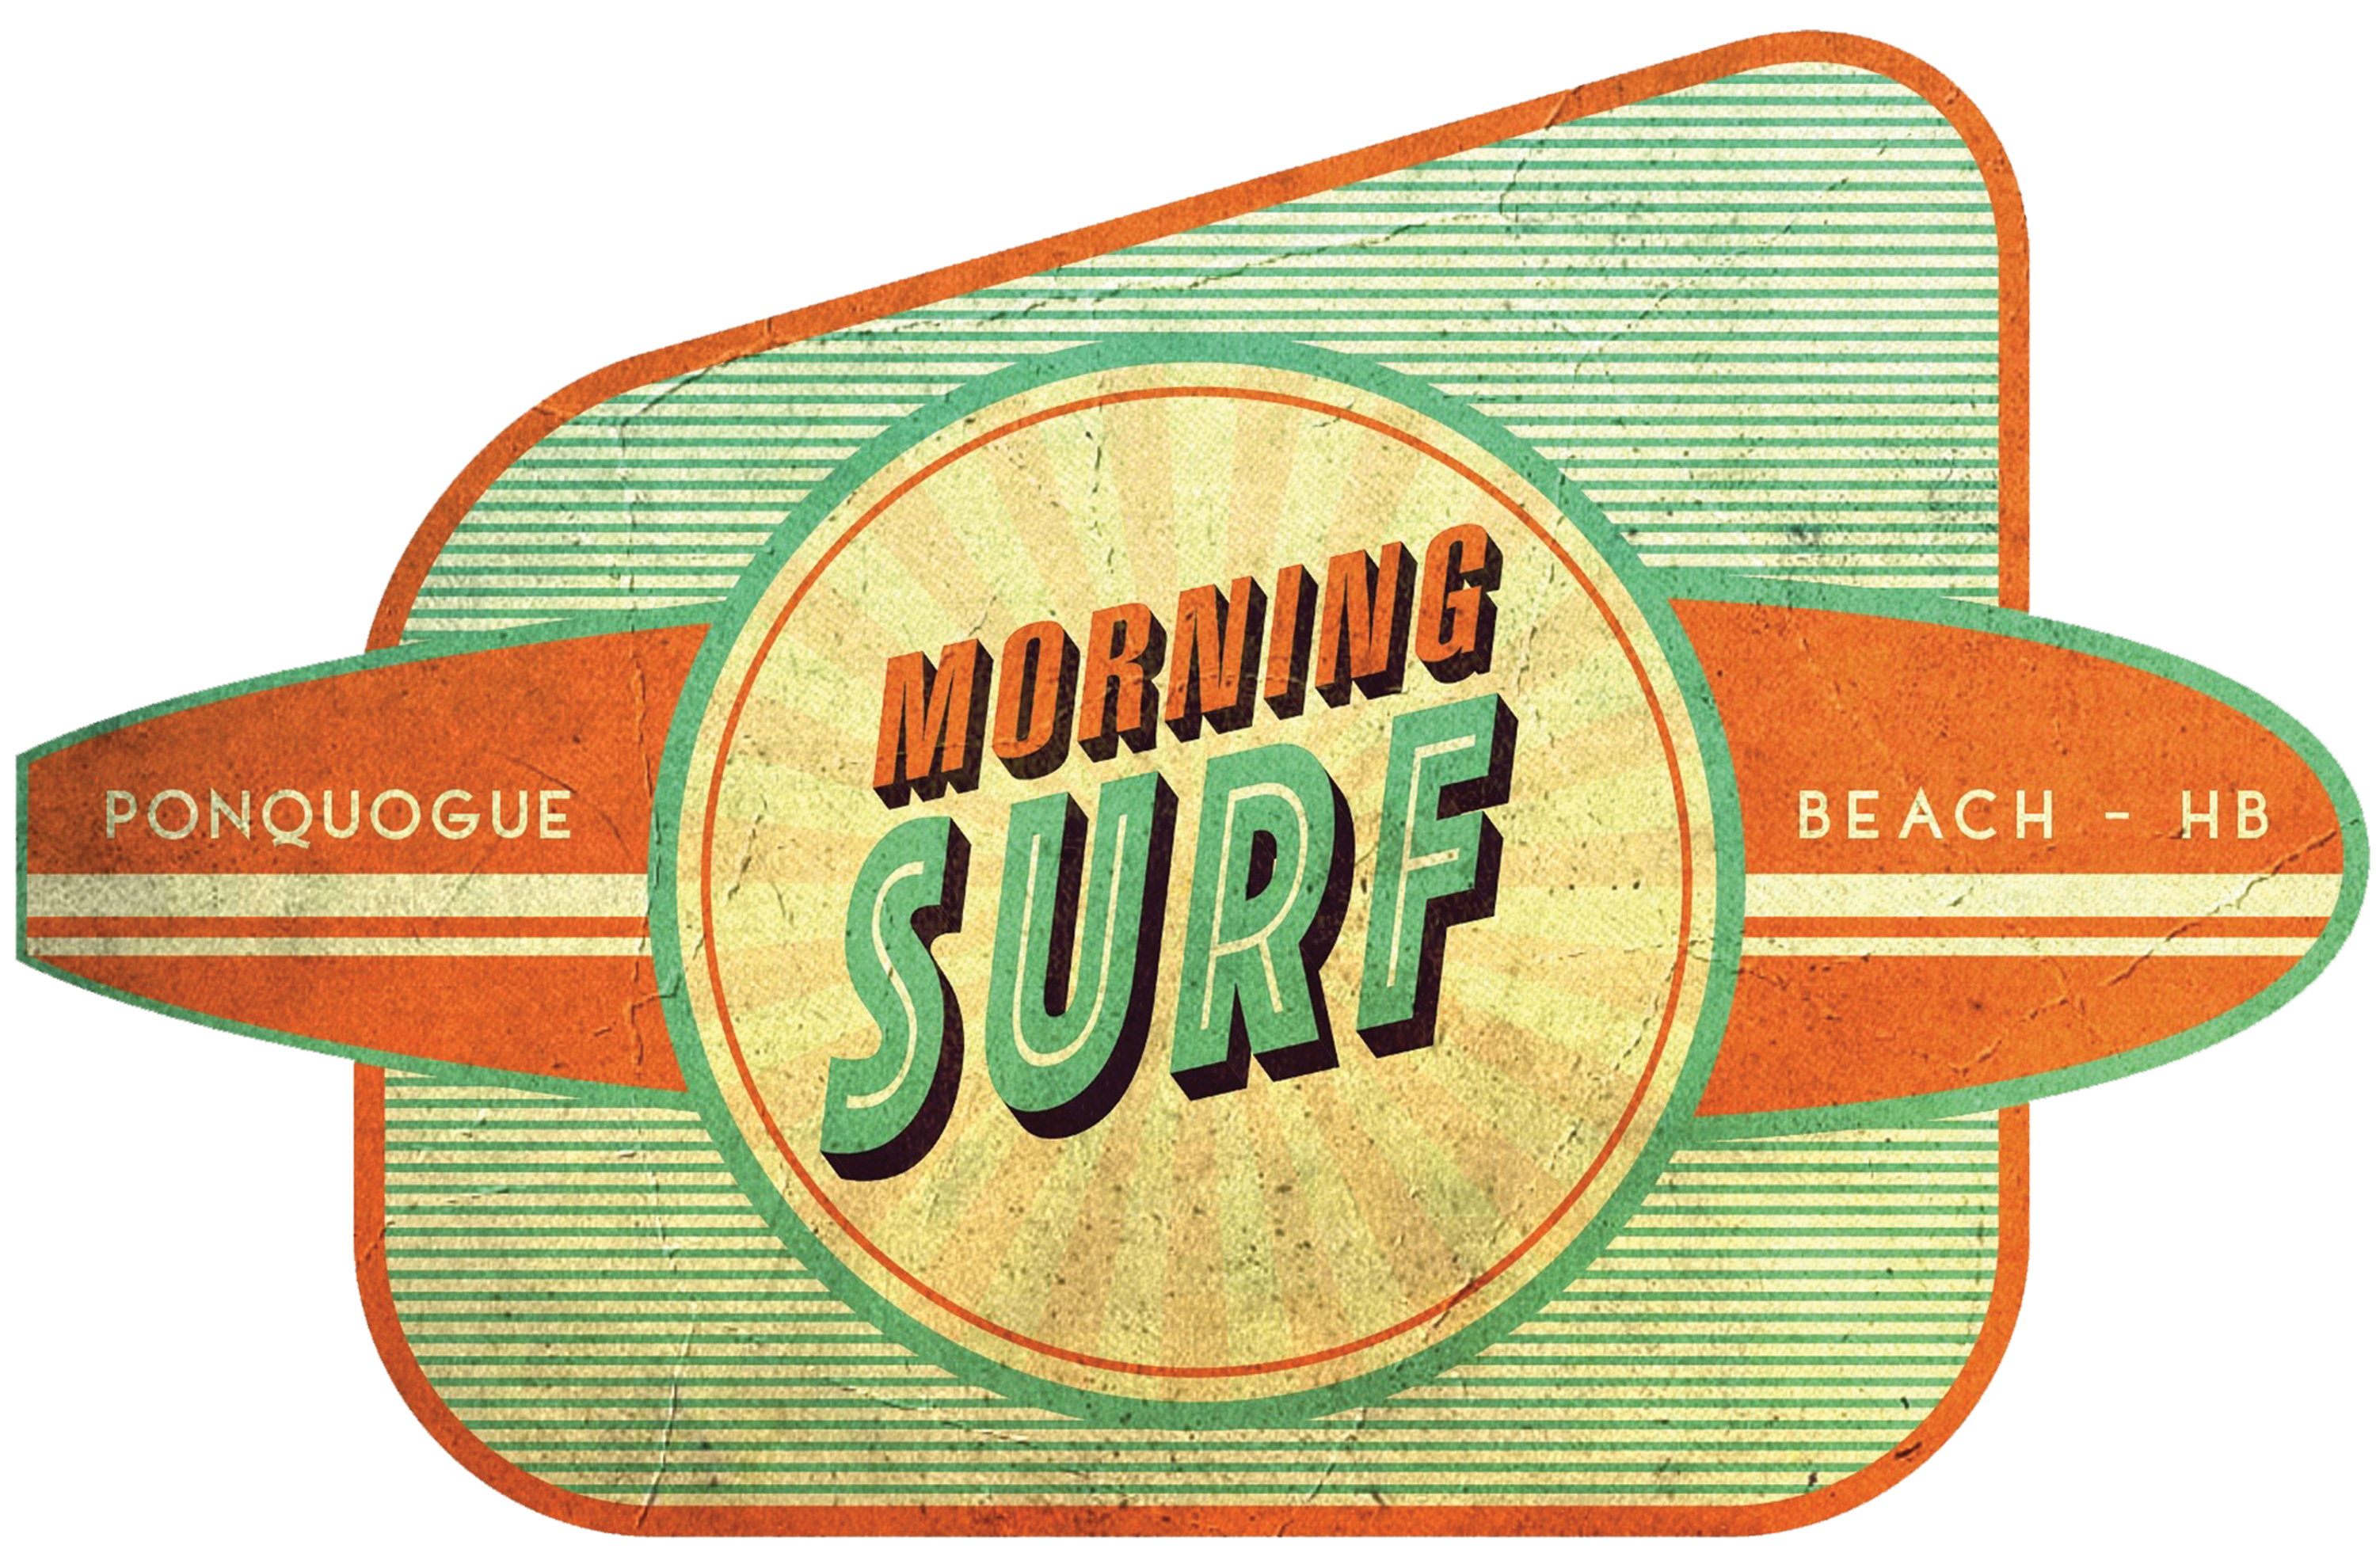 Morning Surf